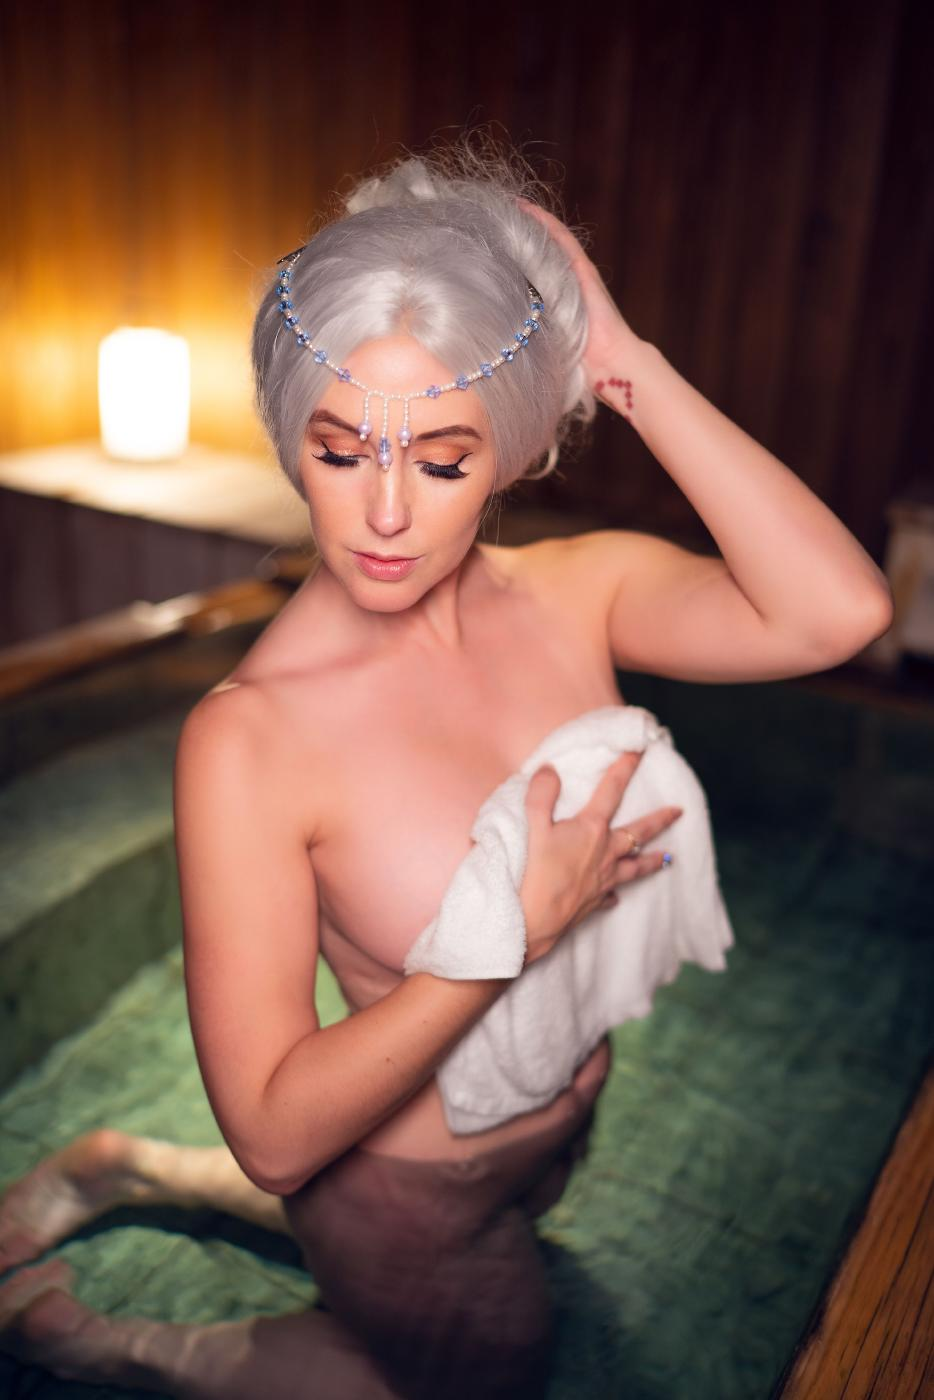 Meg Turney Onlyfans Nude Winter Goddess Onsen Leaked0007